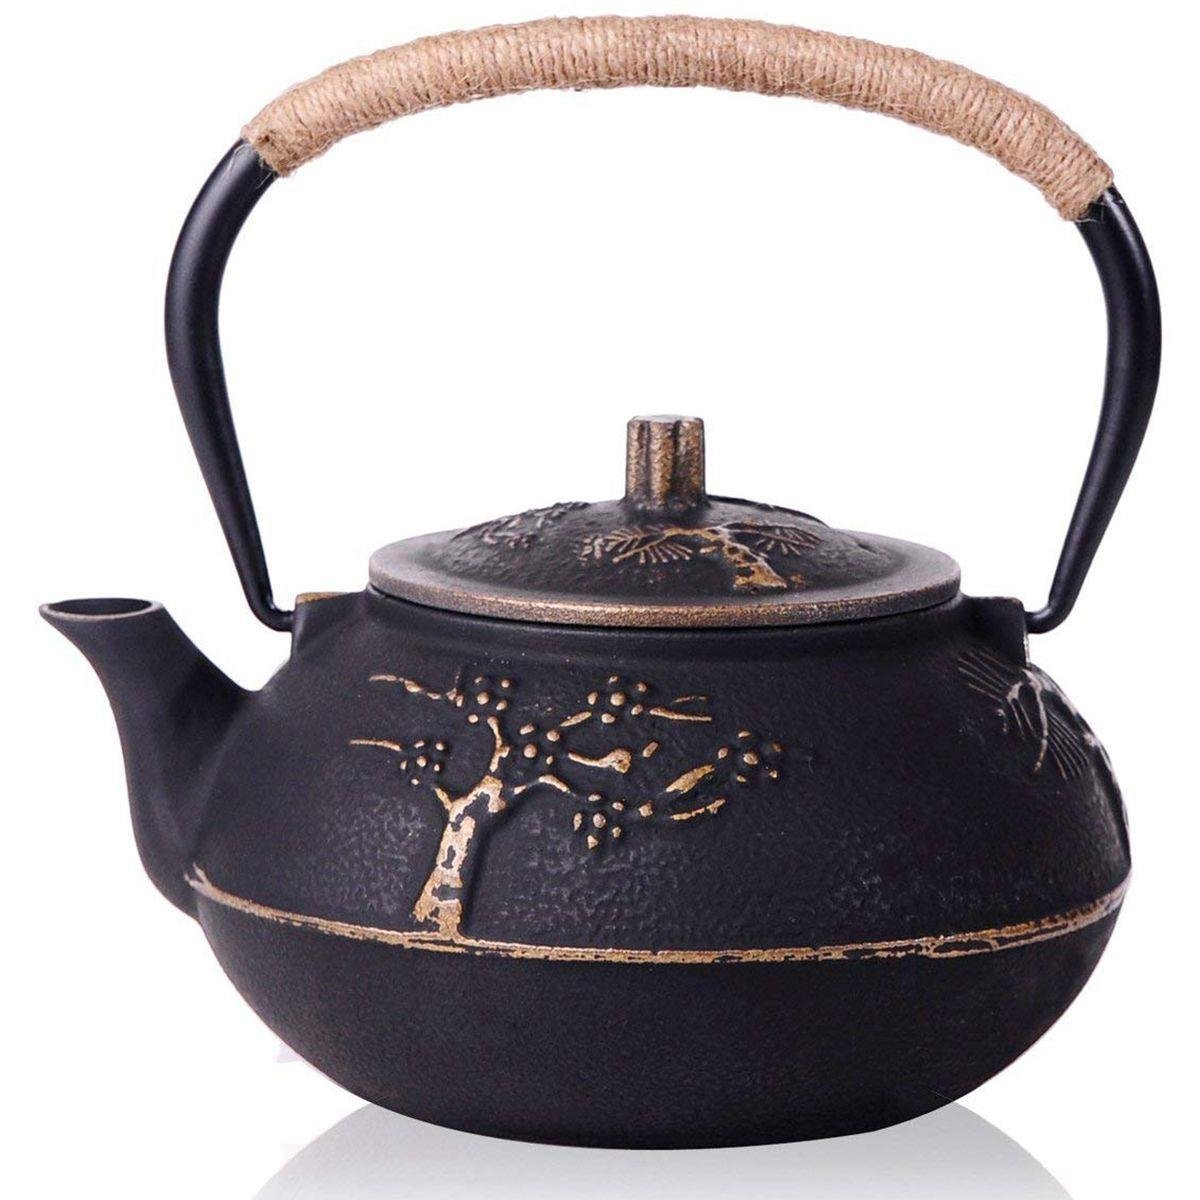 Japanese Cast Iron Teapot Kettle with Stainless Steel Infuser / Strainer , Plum Blossom 30 Ounce ( 900 ml )Japanese Cast Iron Teapot Kettle with Stainless Steel Infuser / Strainer , Plum Blossom 30 Ounce ( 900 ml )